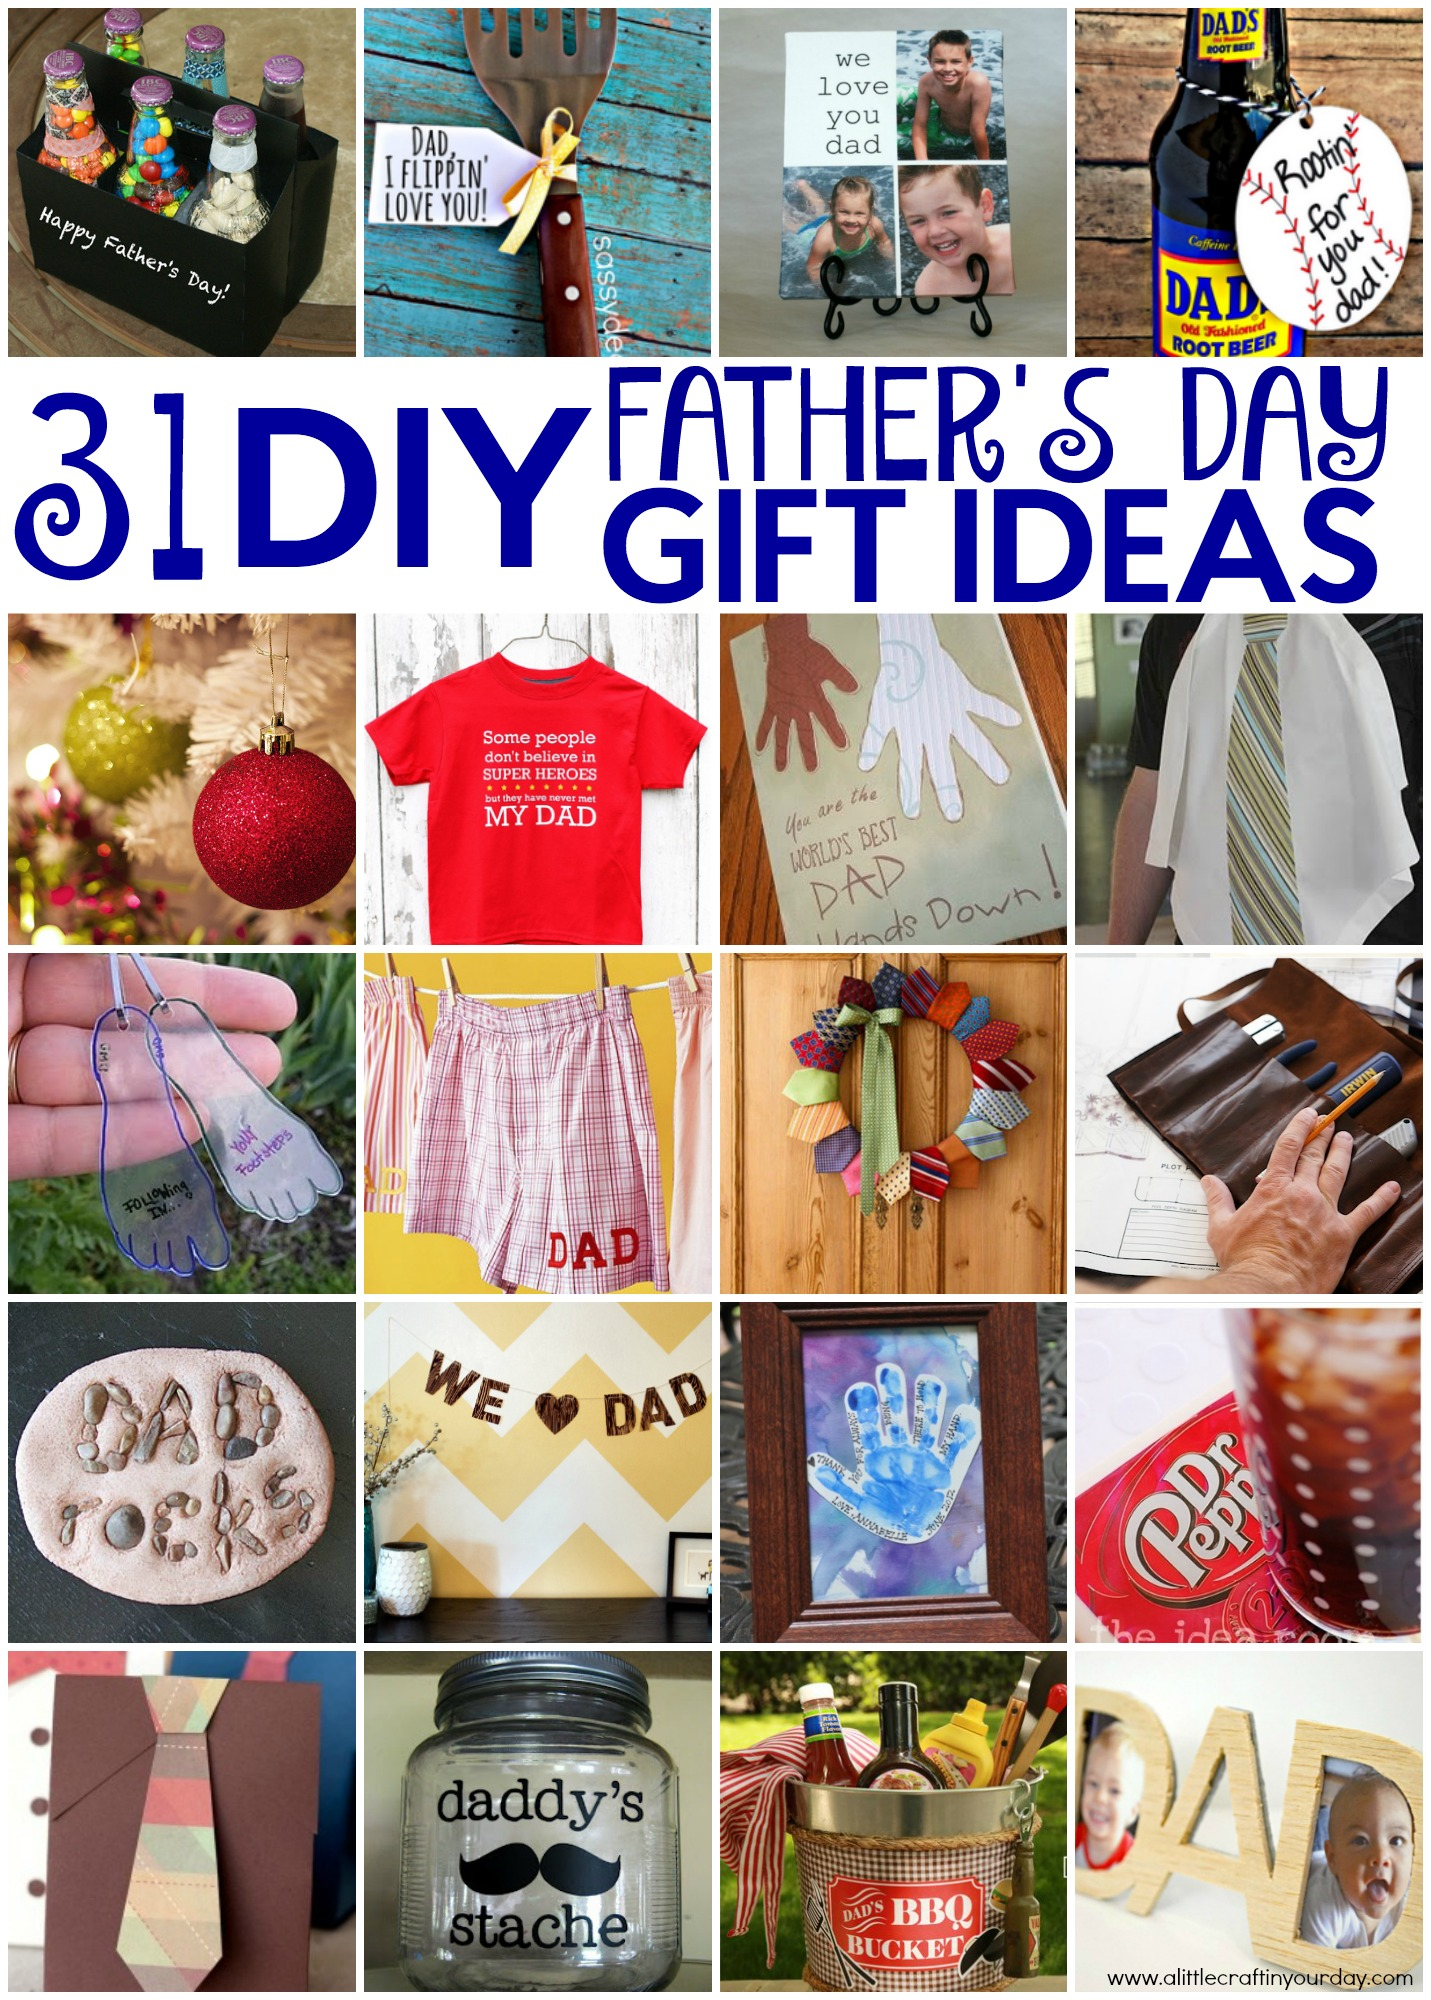 31 Father's Day Gift Ideas